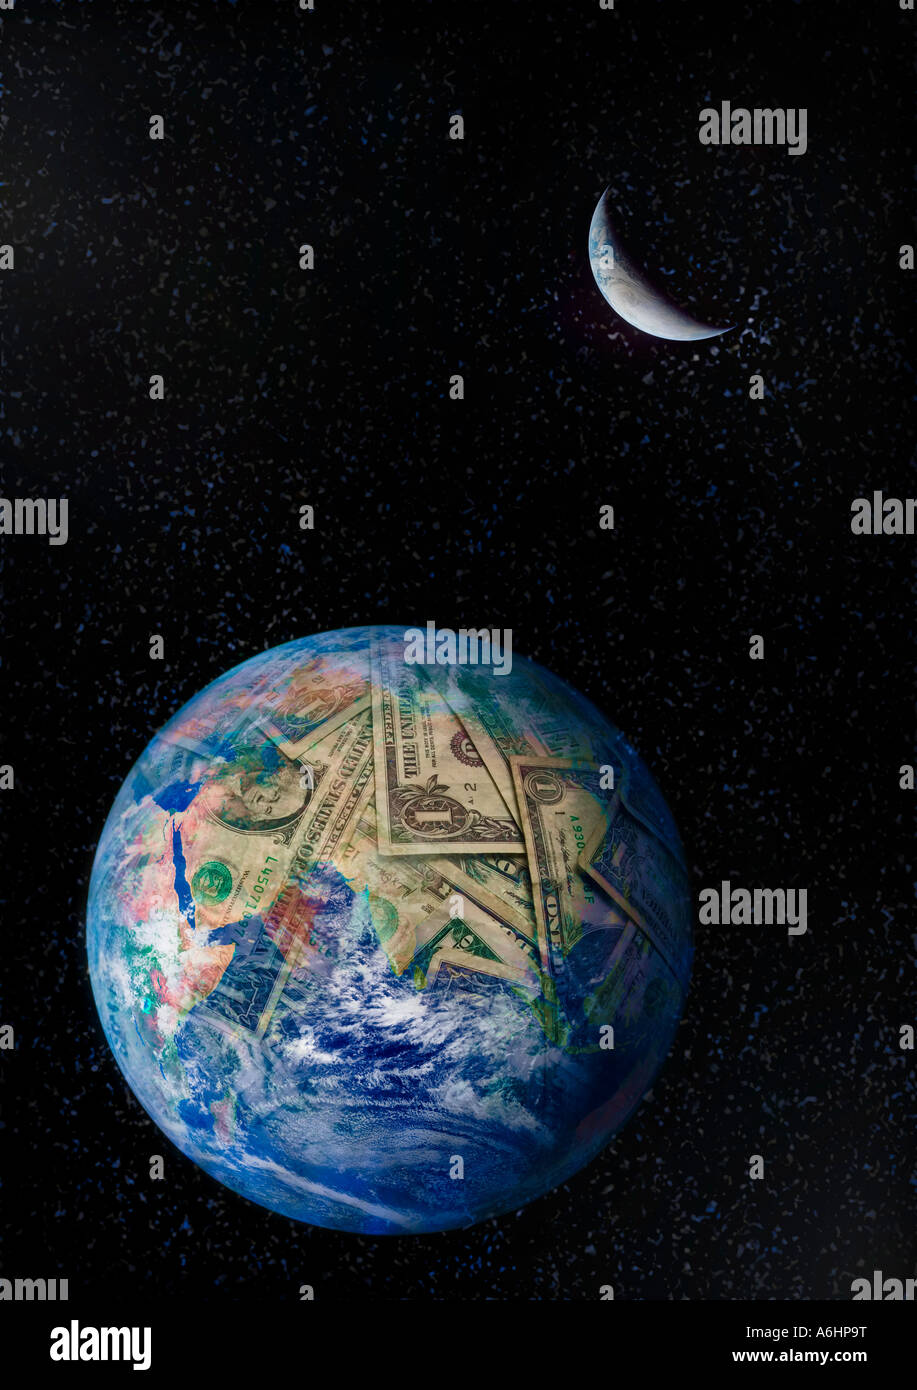 Money Earth Stock Photo